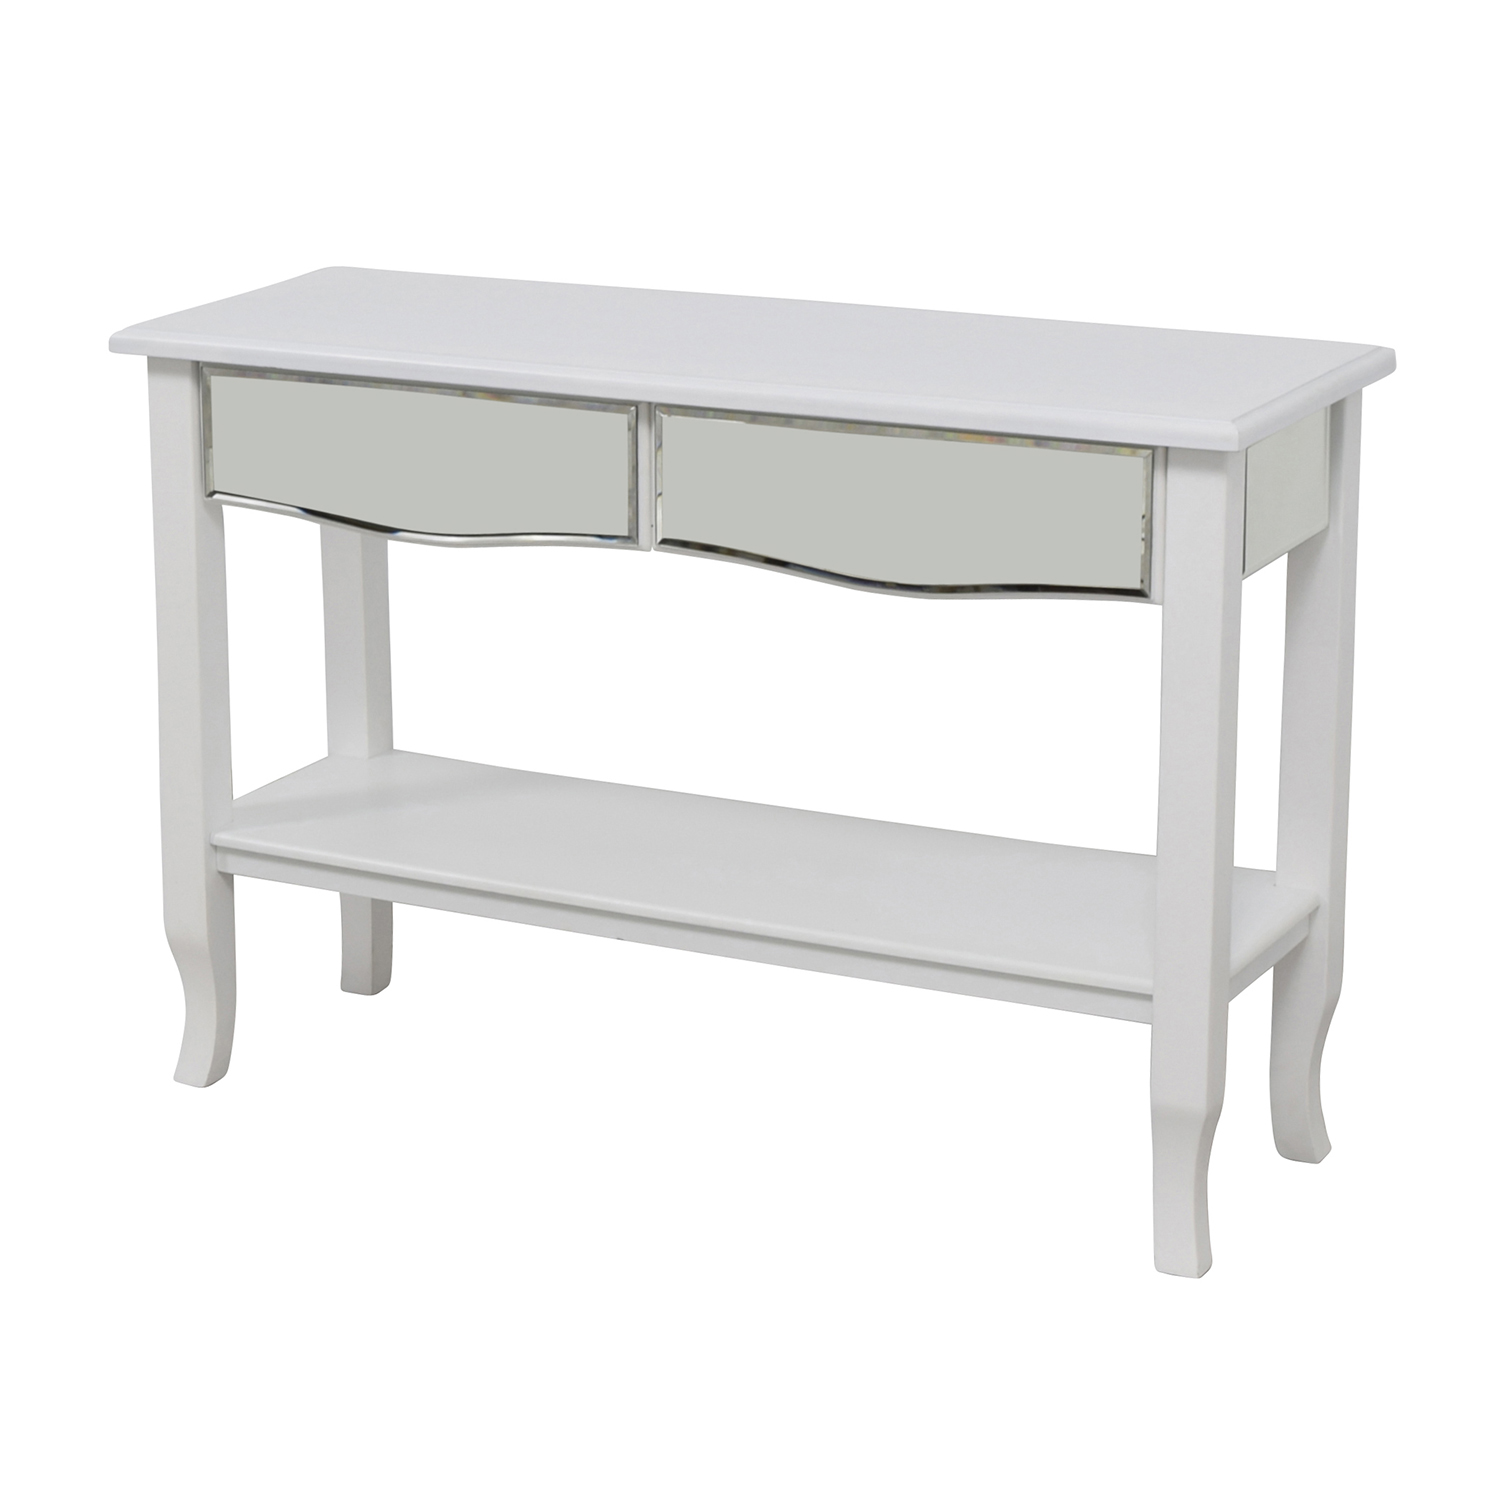 85 OFF White Mirrored Console Table with TwoDrawers Tables